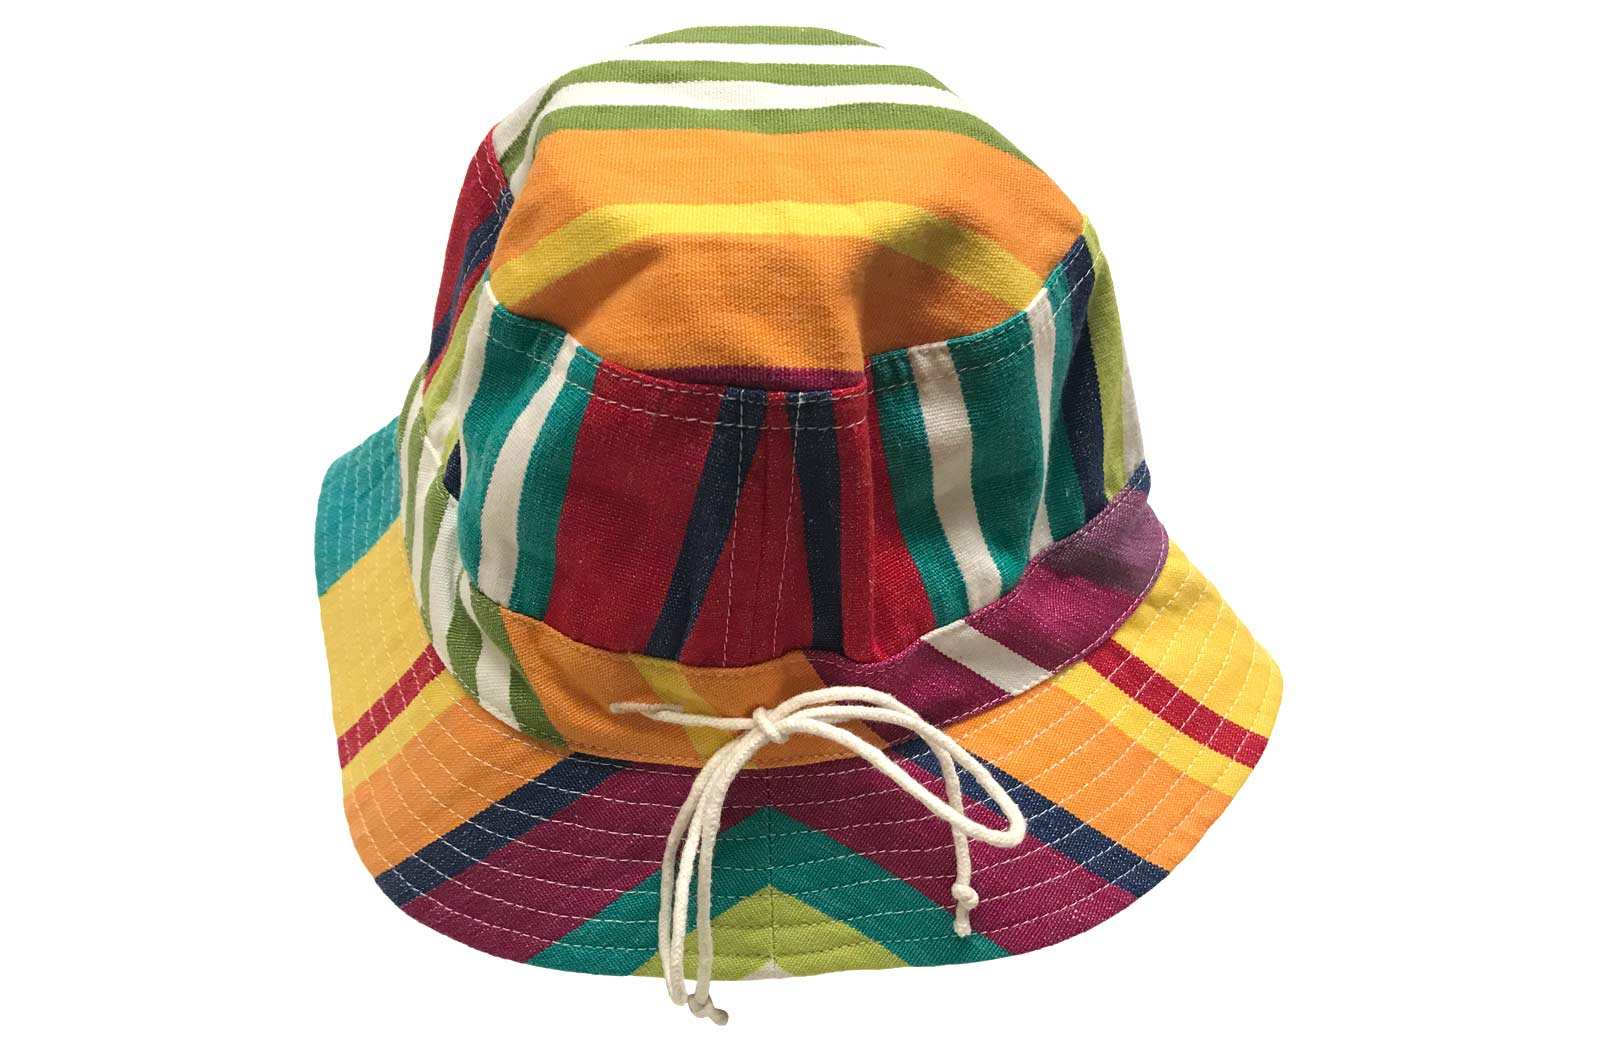 Aerobics Kids Bucket Hat | Striped Sun Hats for Kids